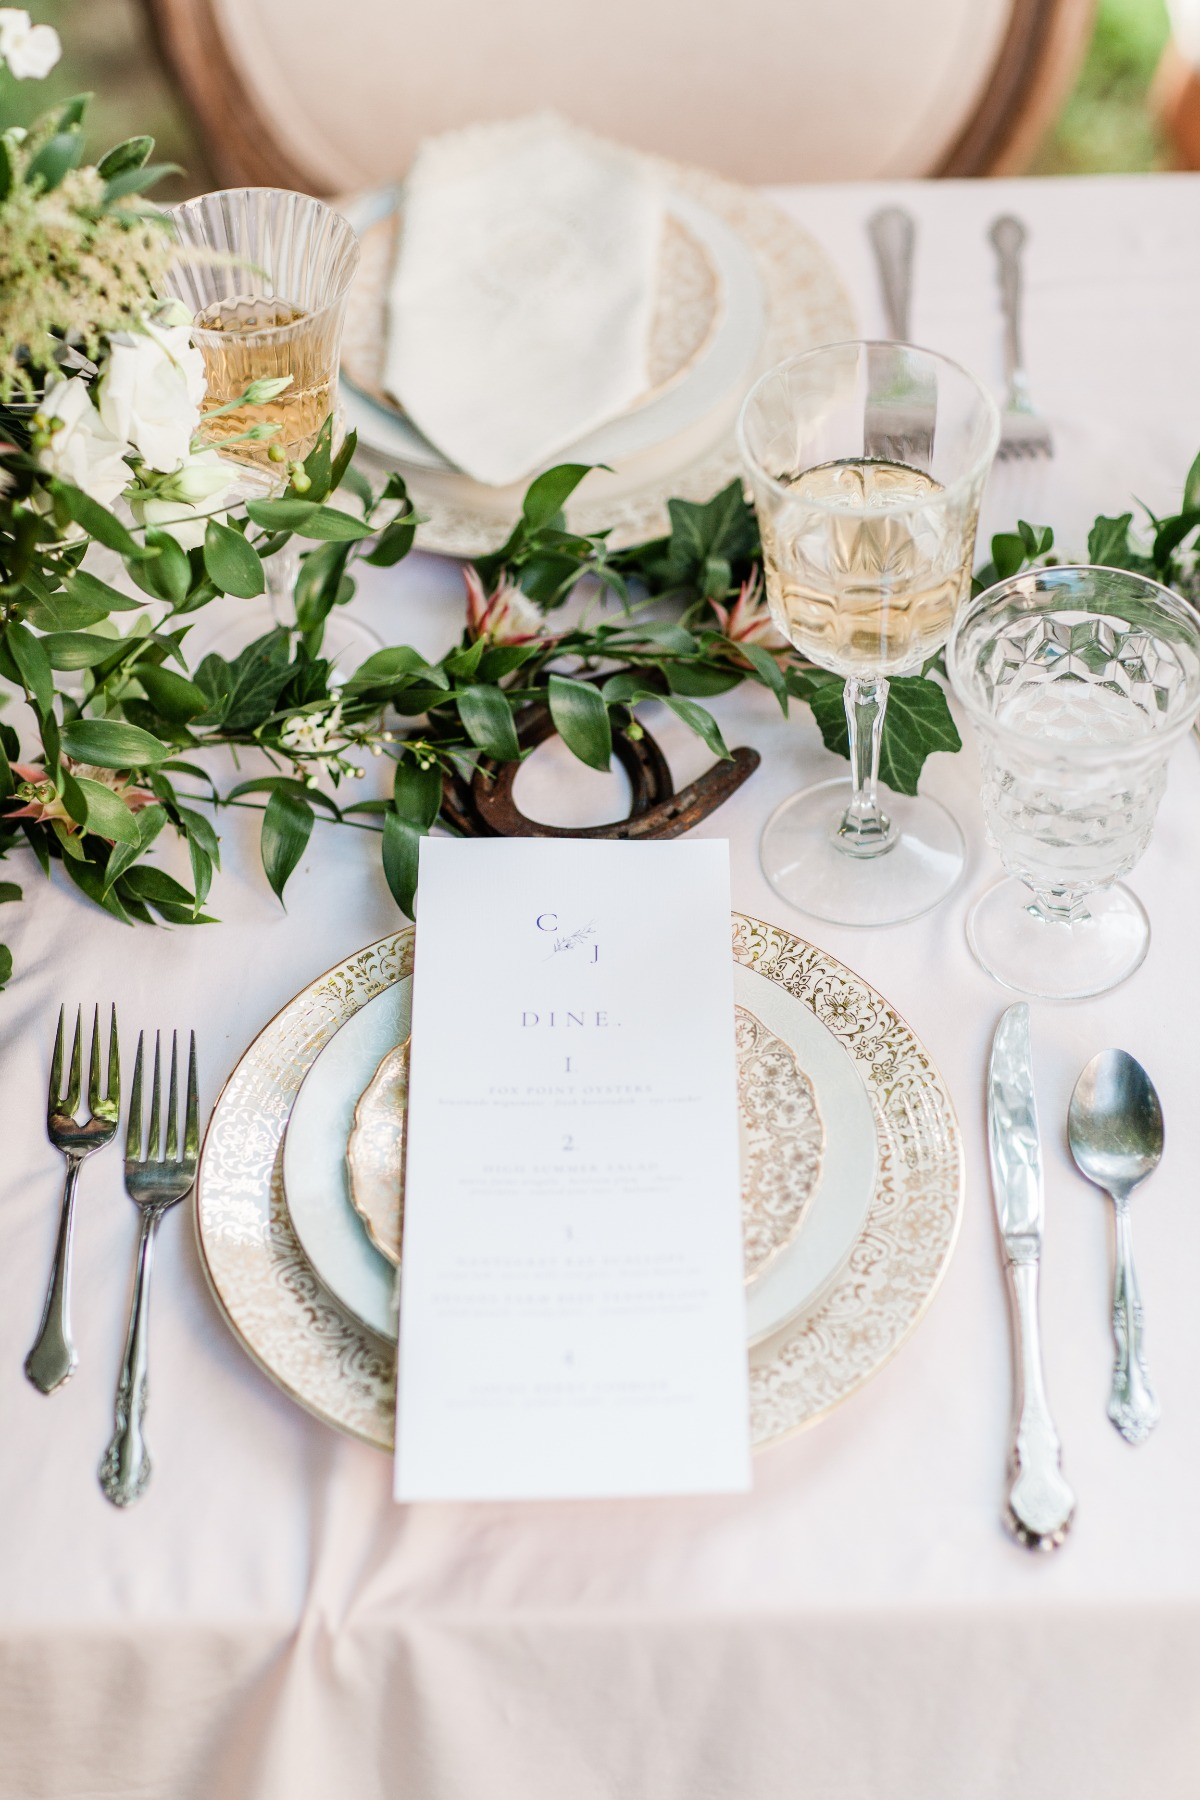 elegant wedding at the derby inspired table decor